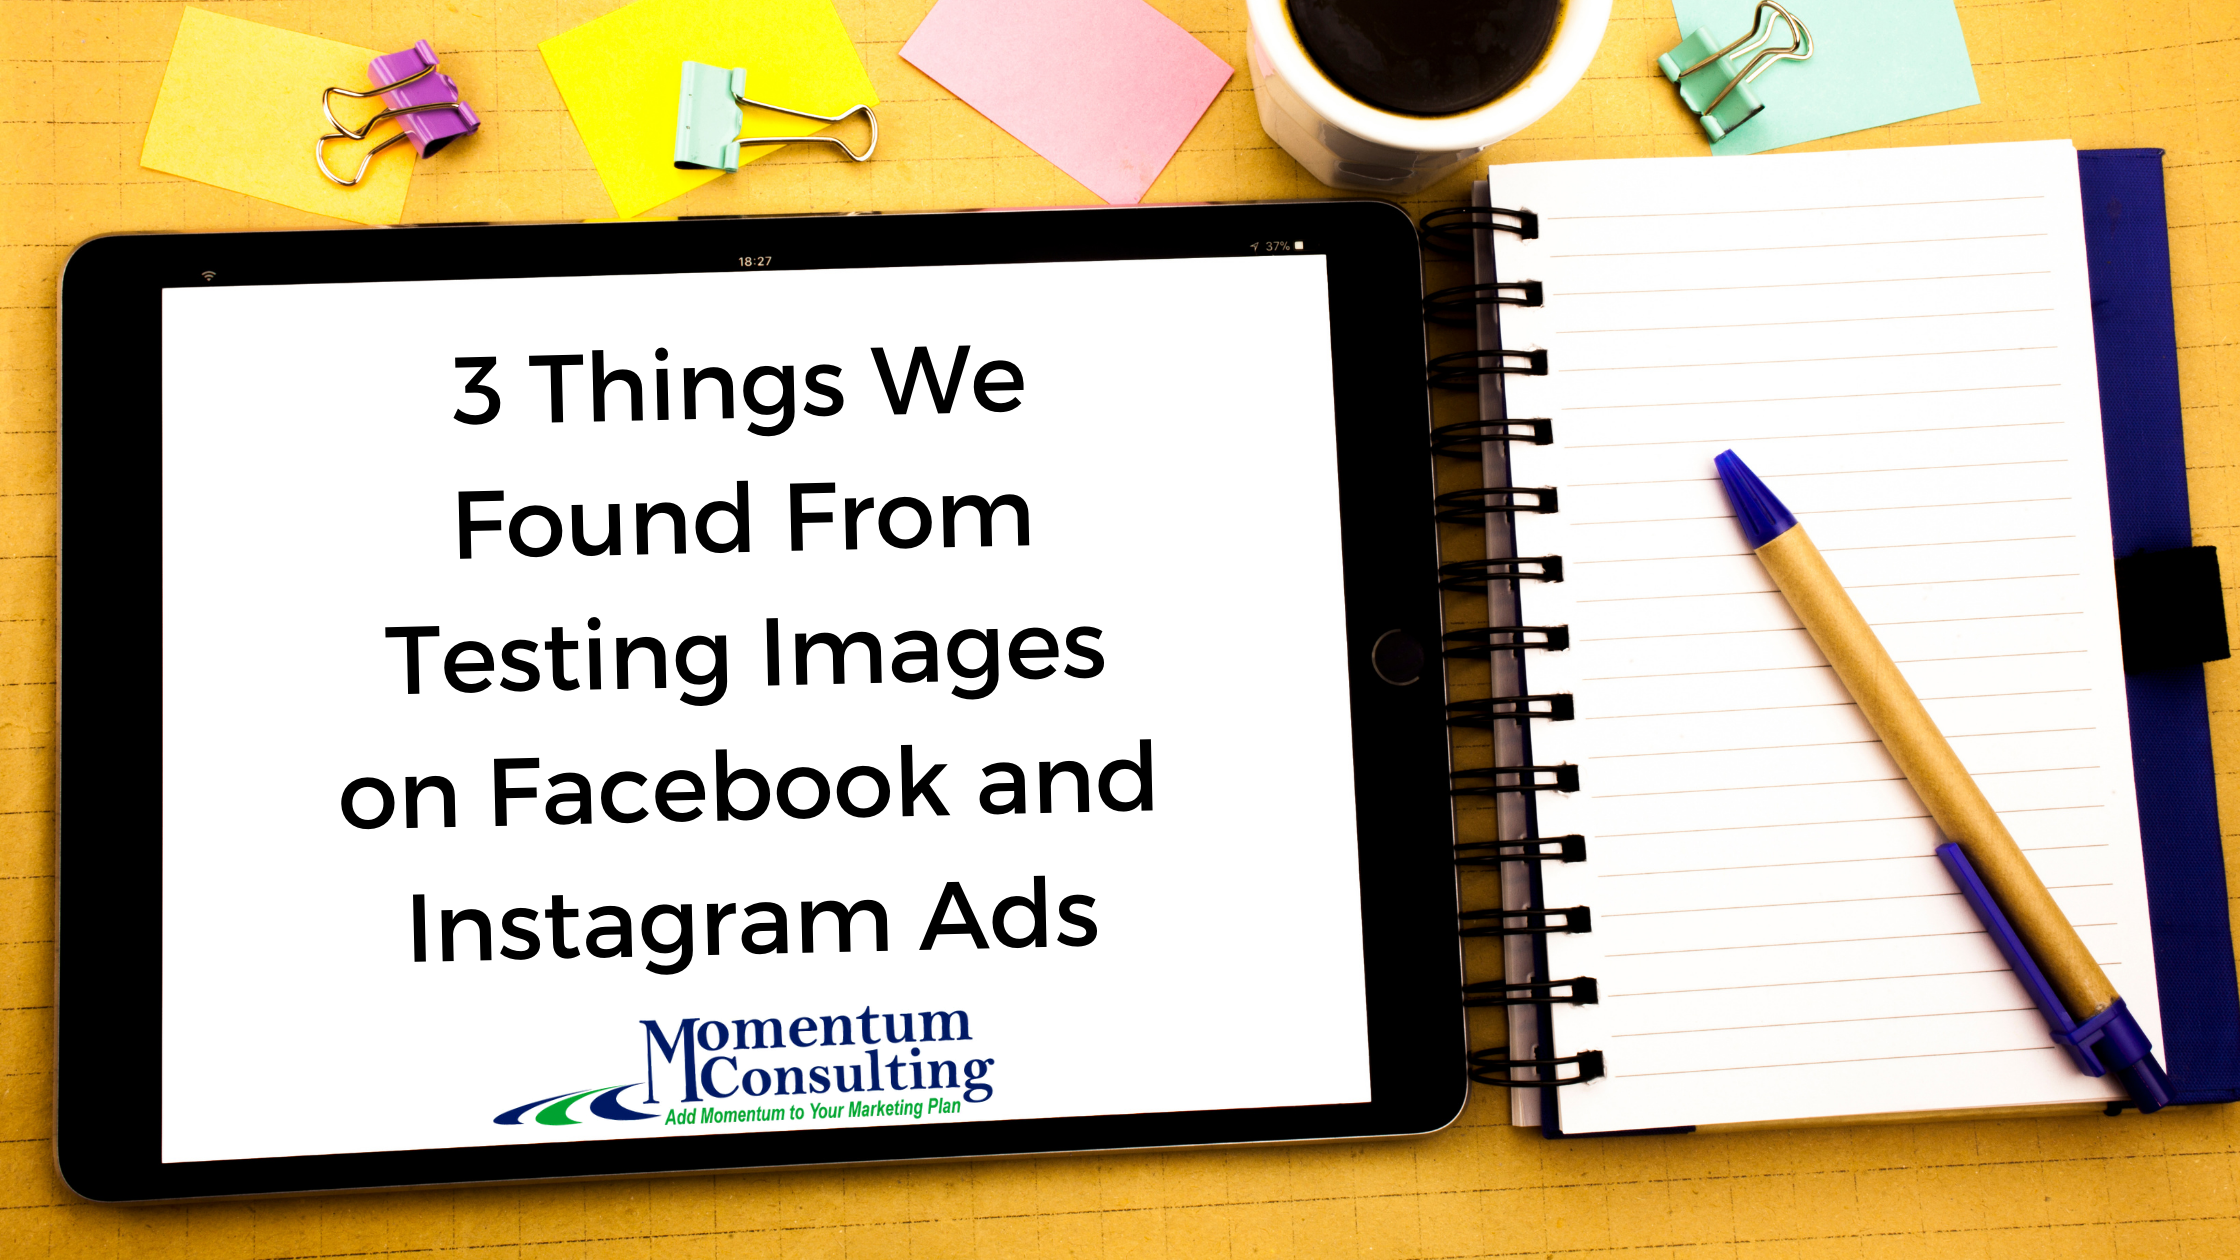 3 Things We Found From Testing Images on Facebook and Instagram Ads